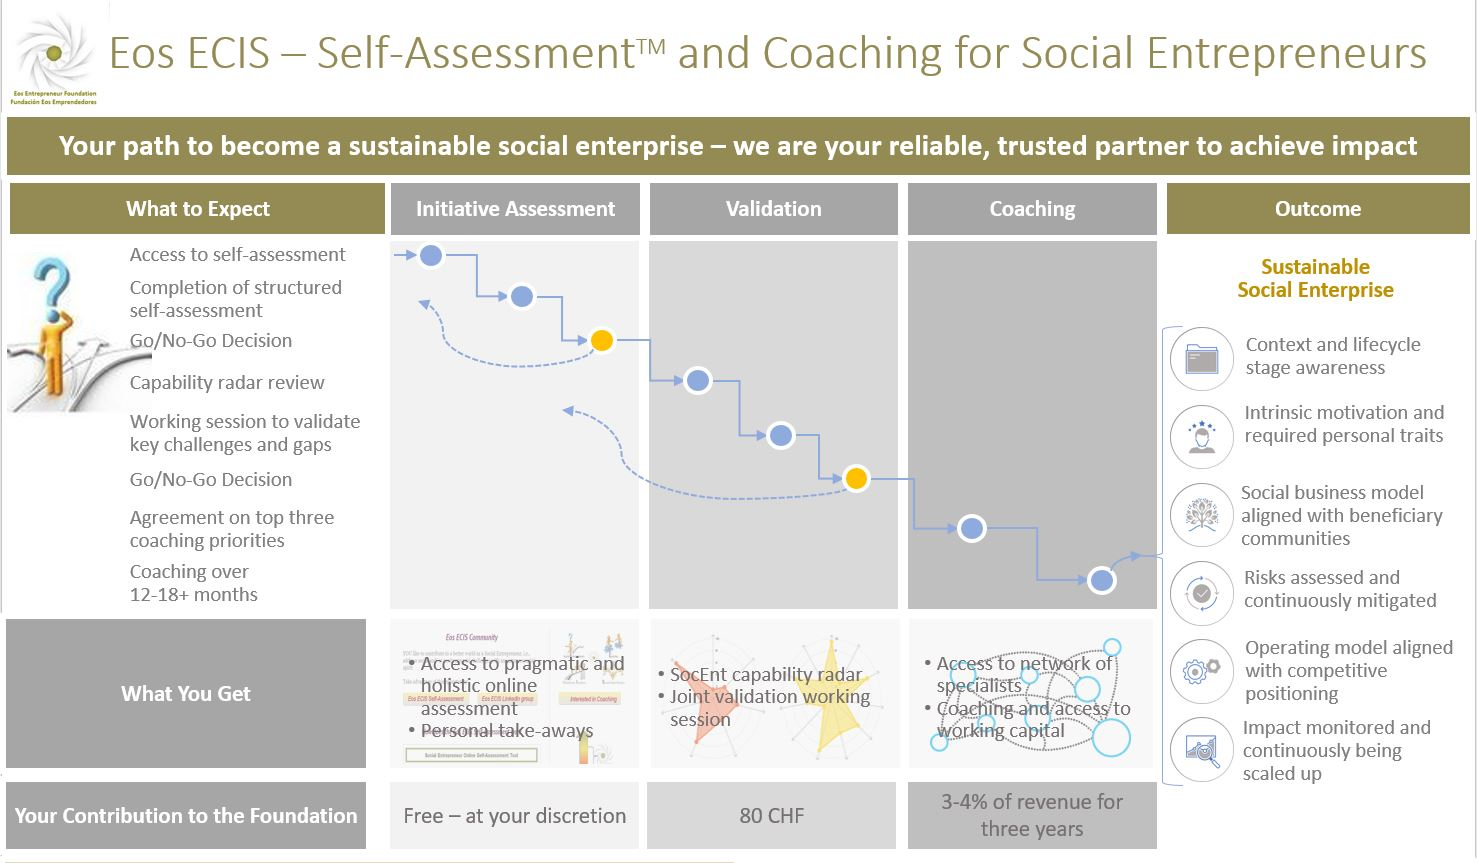 Eos ECIS - Self-Assessment and Coaching for Social Entrepreneurs